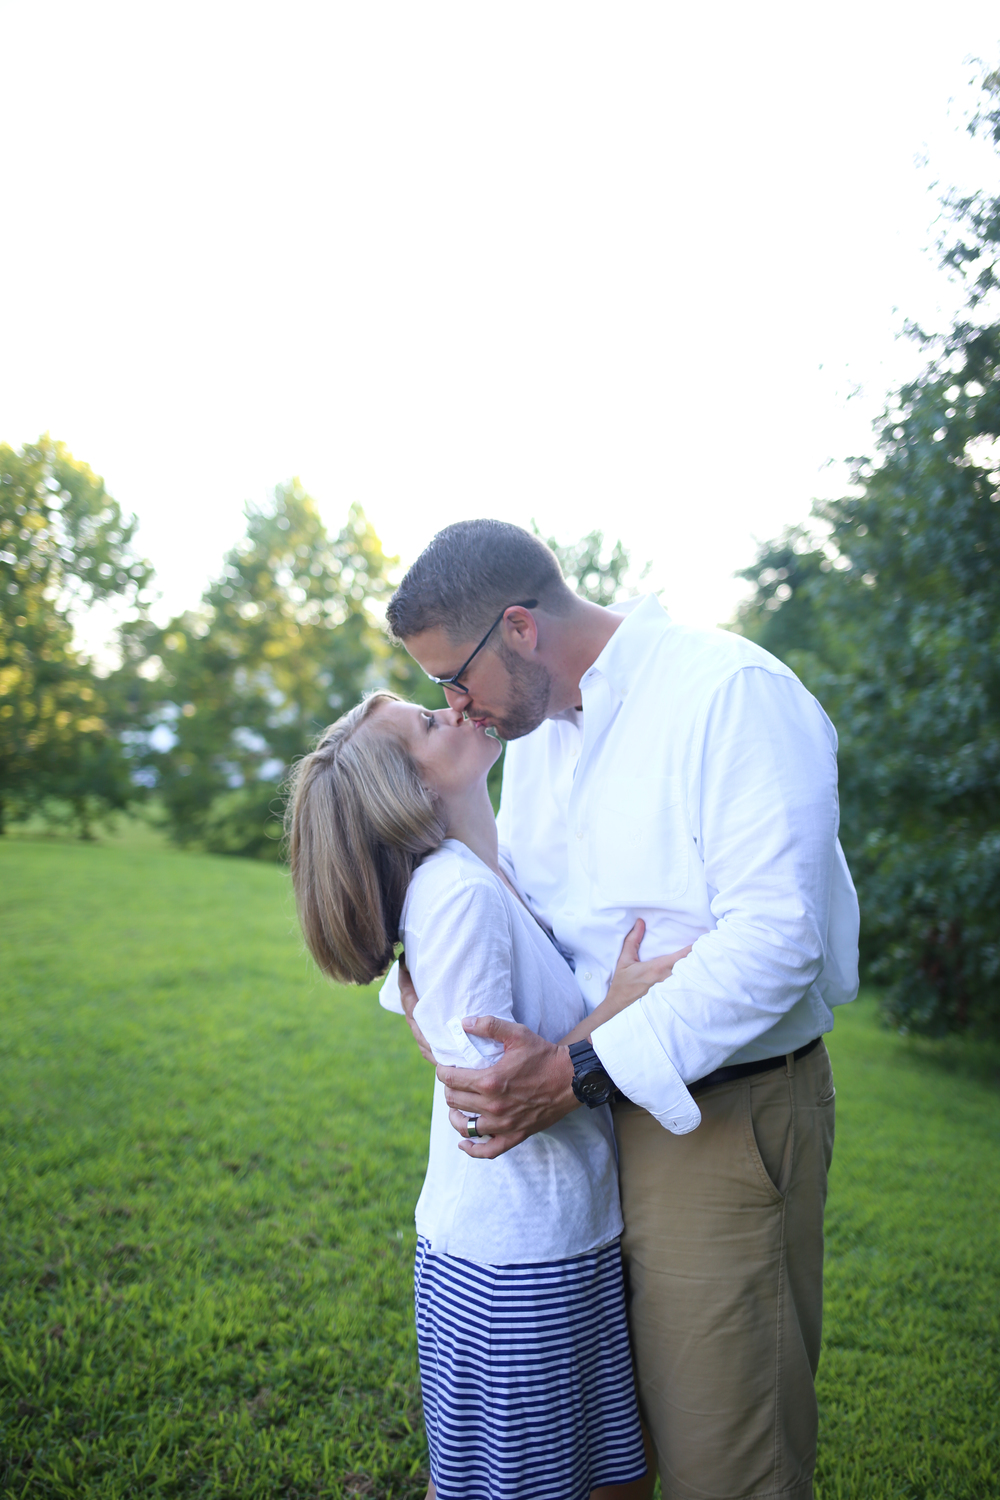 Clarksville Photographer - Whit Meza Photography